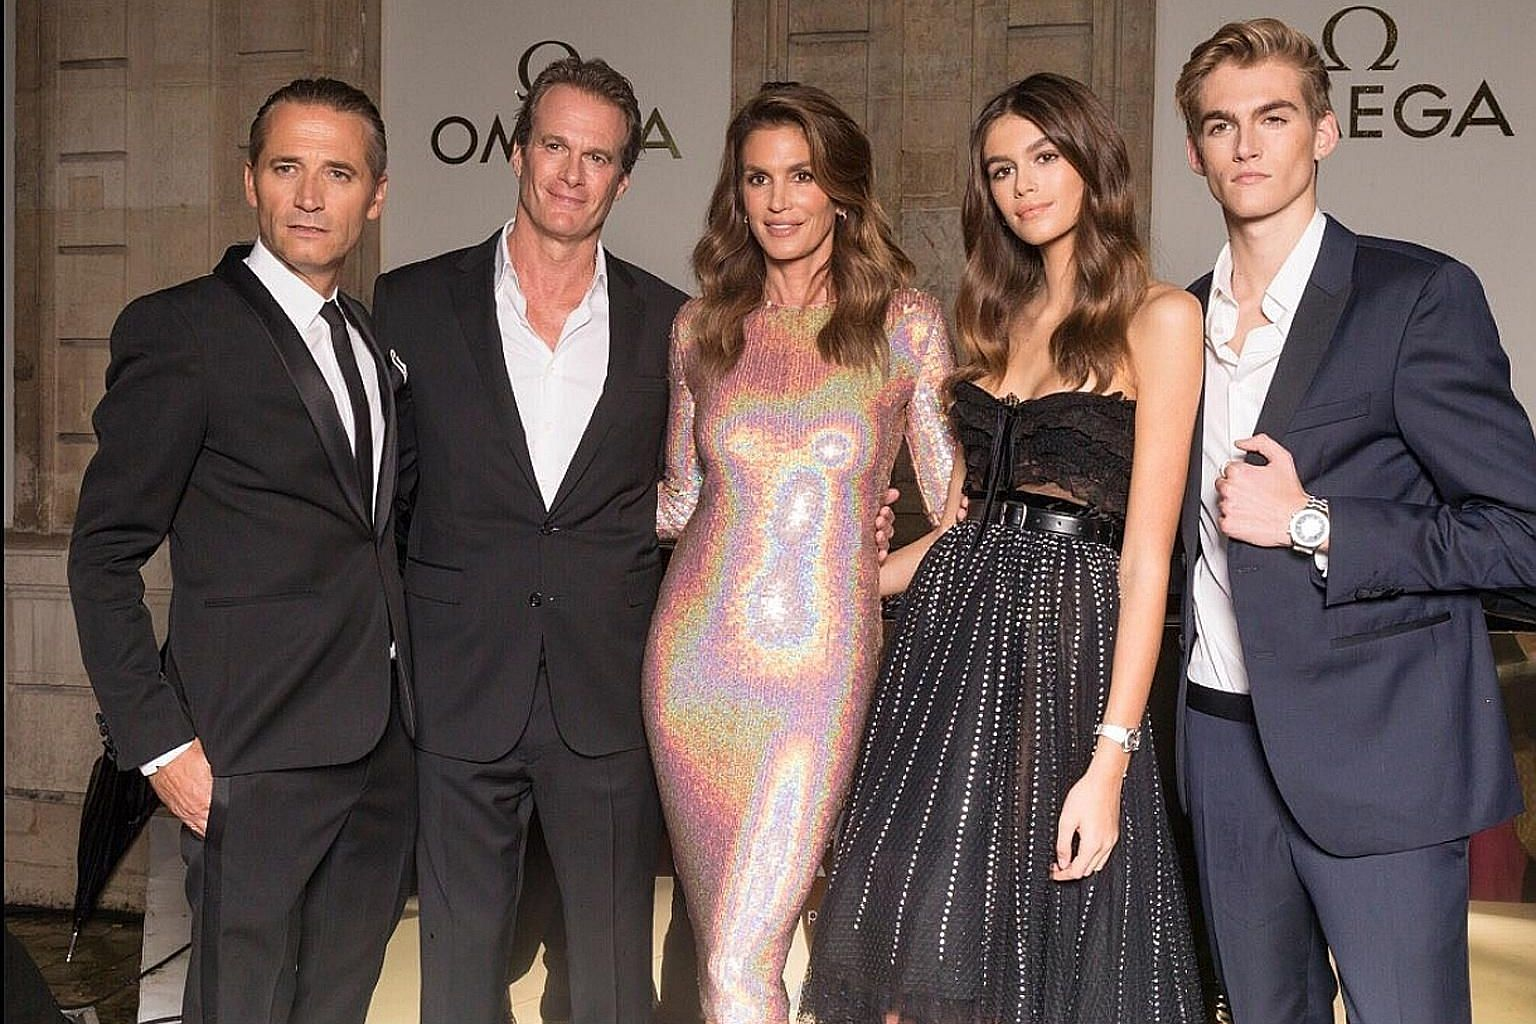 Cindy Crawford (centre) with (from far left) Mr Raynald Aeschlimann, president and chief executive officer of Omega, husband Rande Gerber, daughter Kaia and son Presley at the opening of the Her Time exhibition in Paris recently.